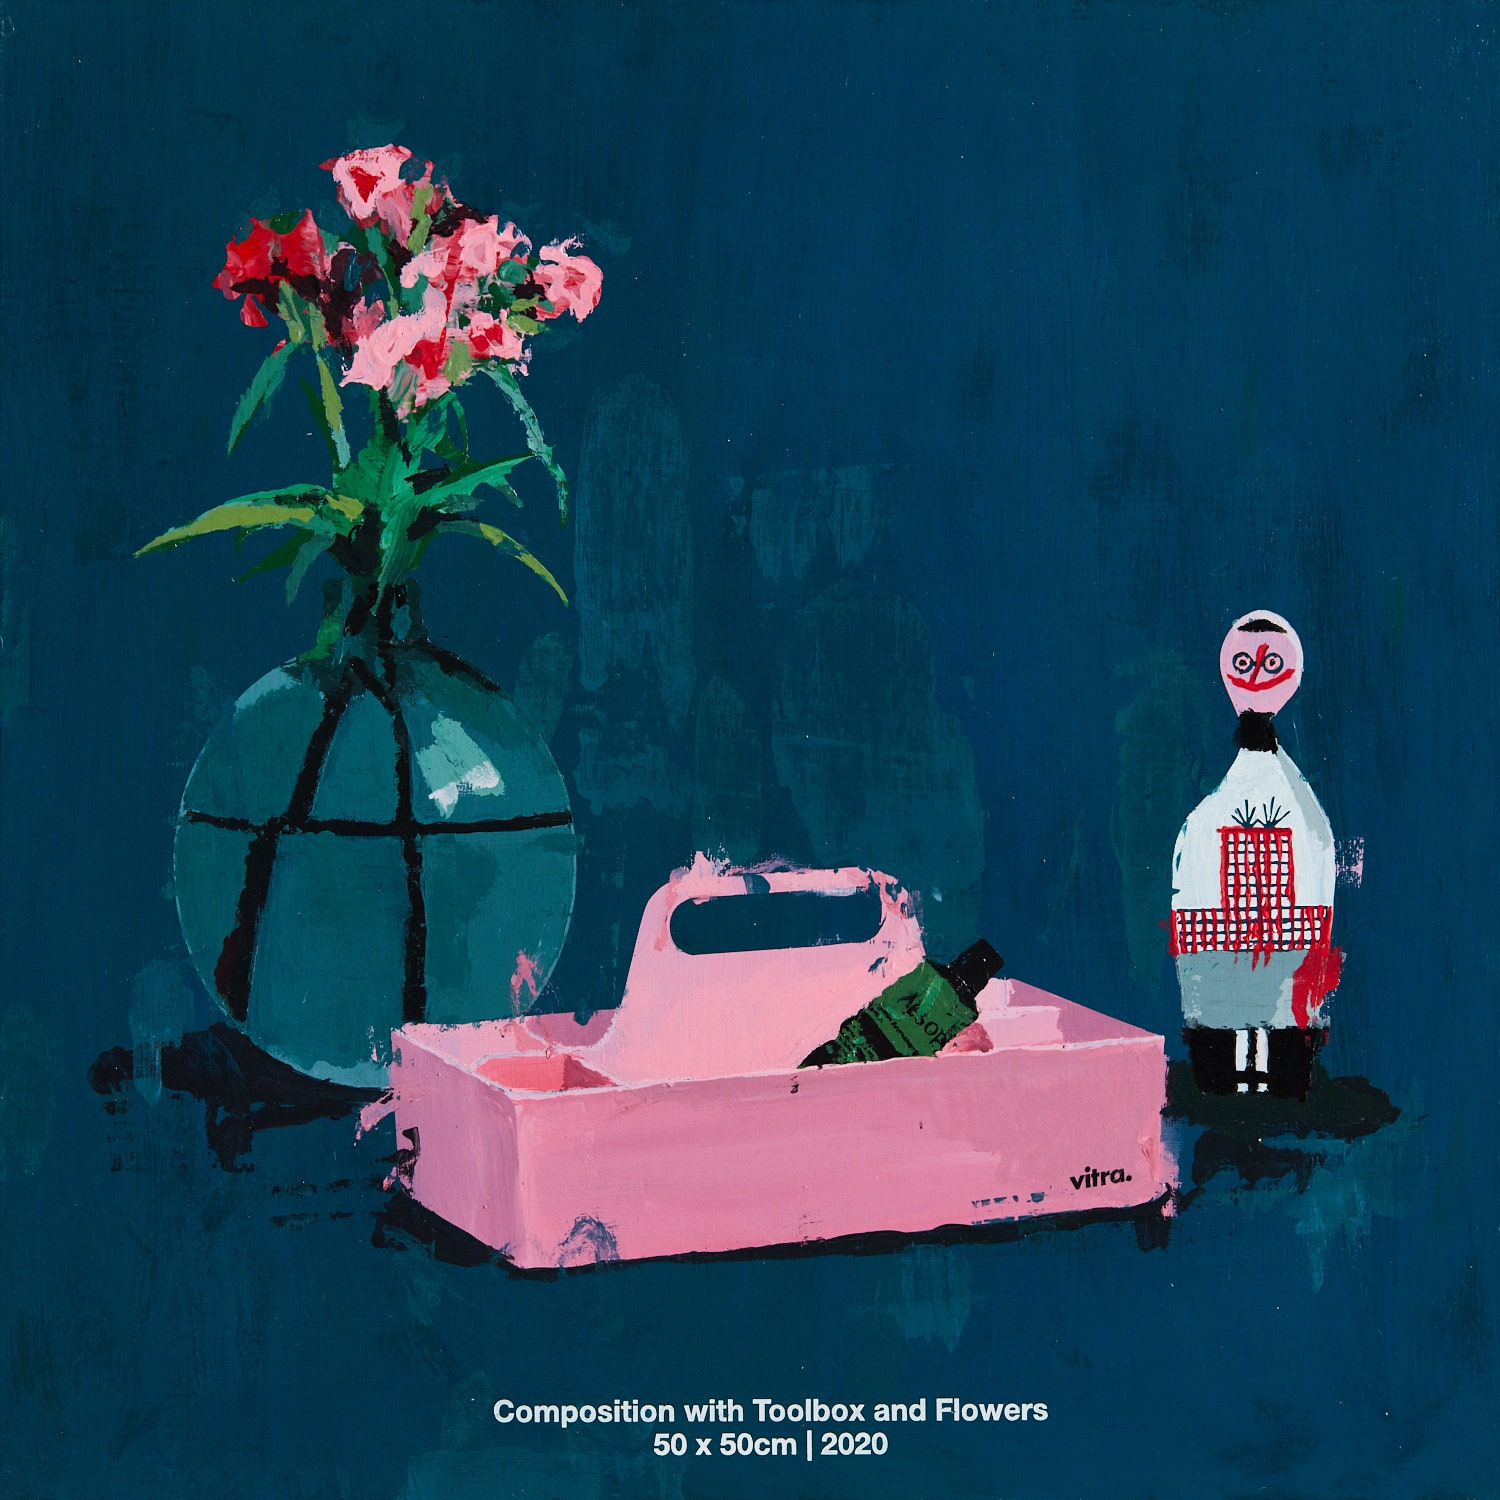 Compostion with Toolbox and Flowers. 2020. 50 x 50 cm.